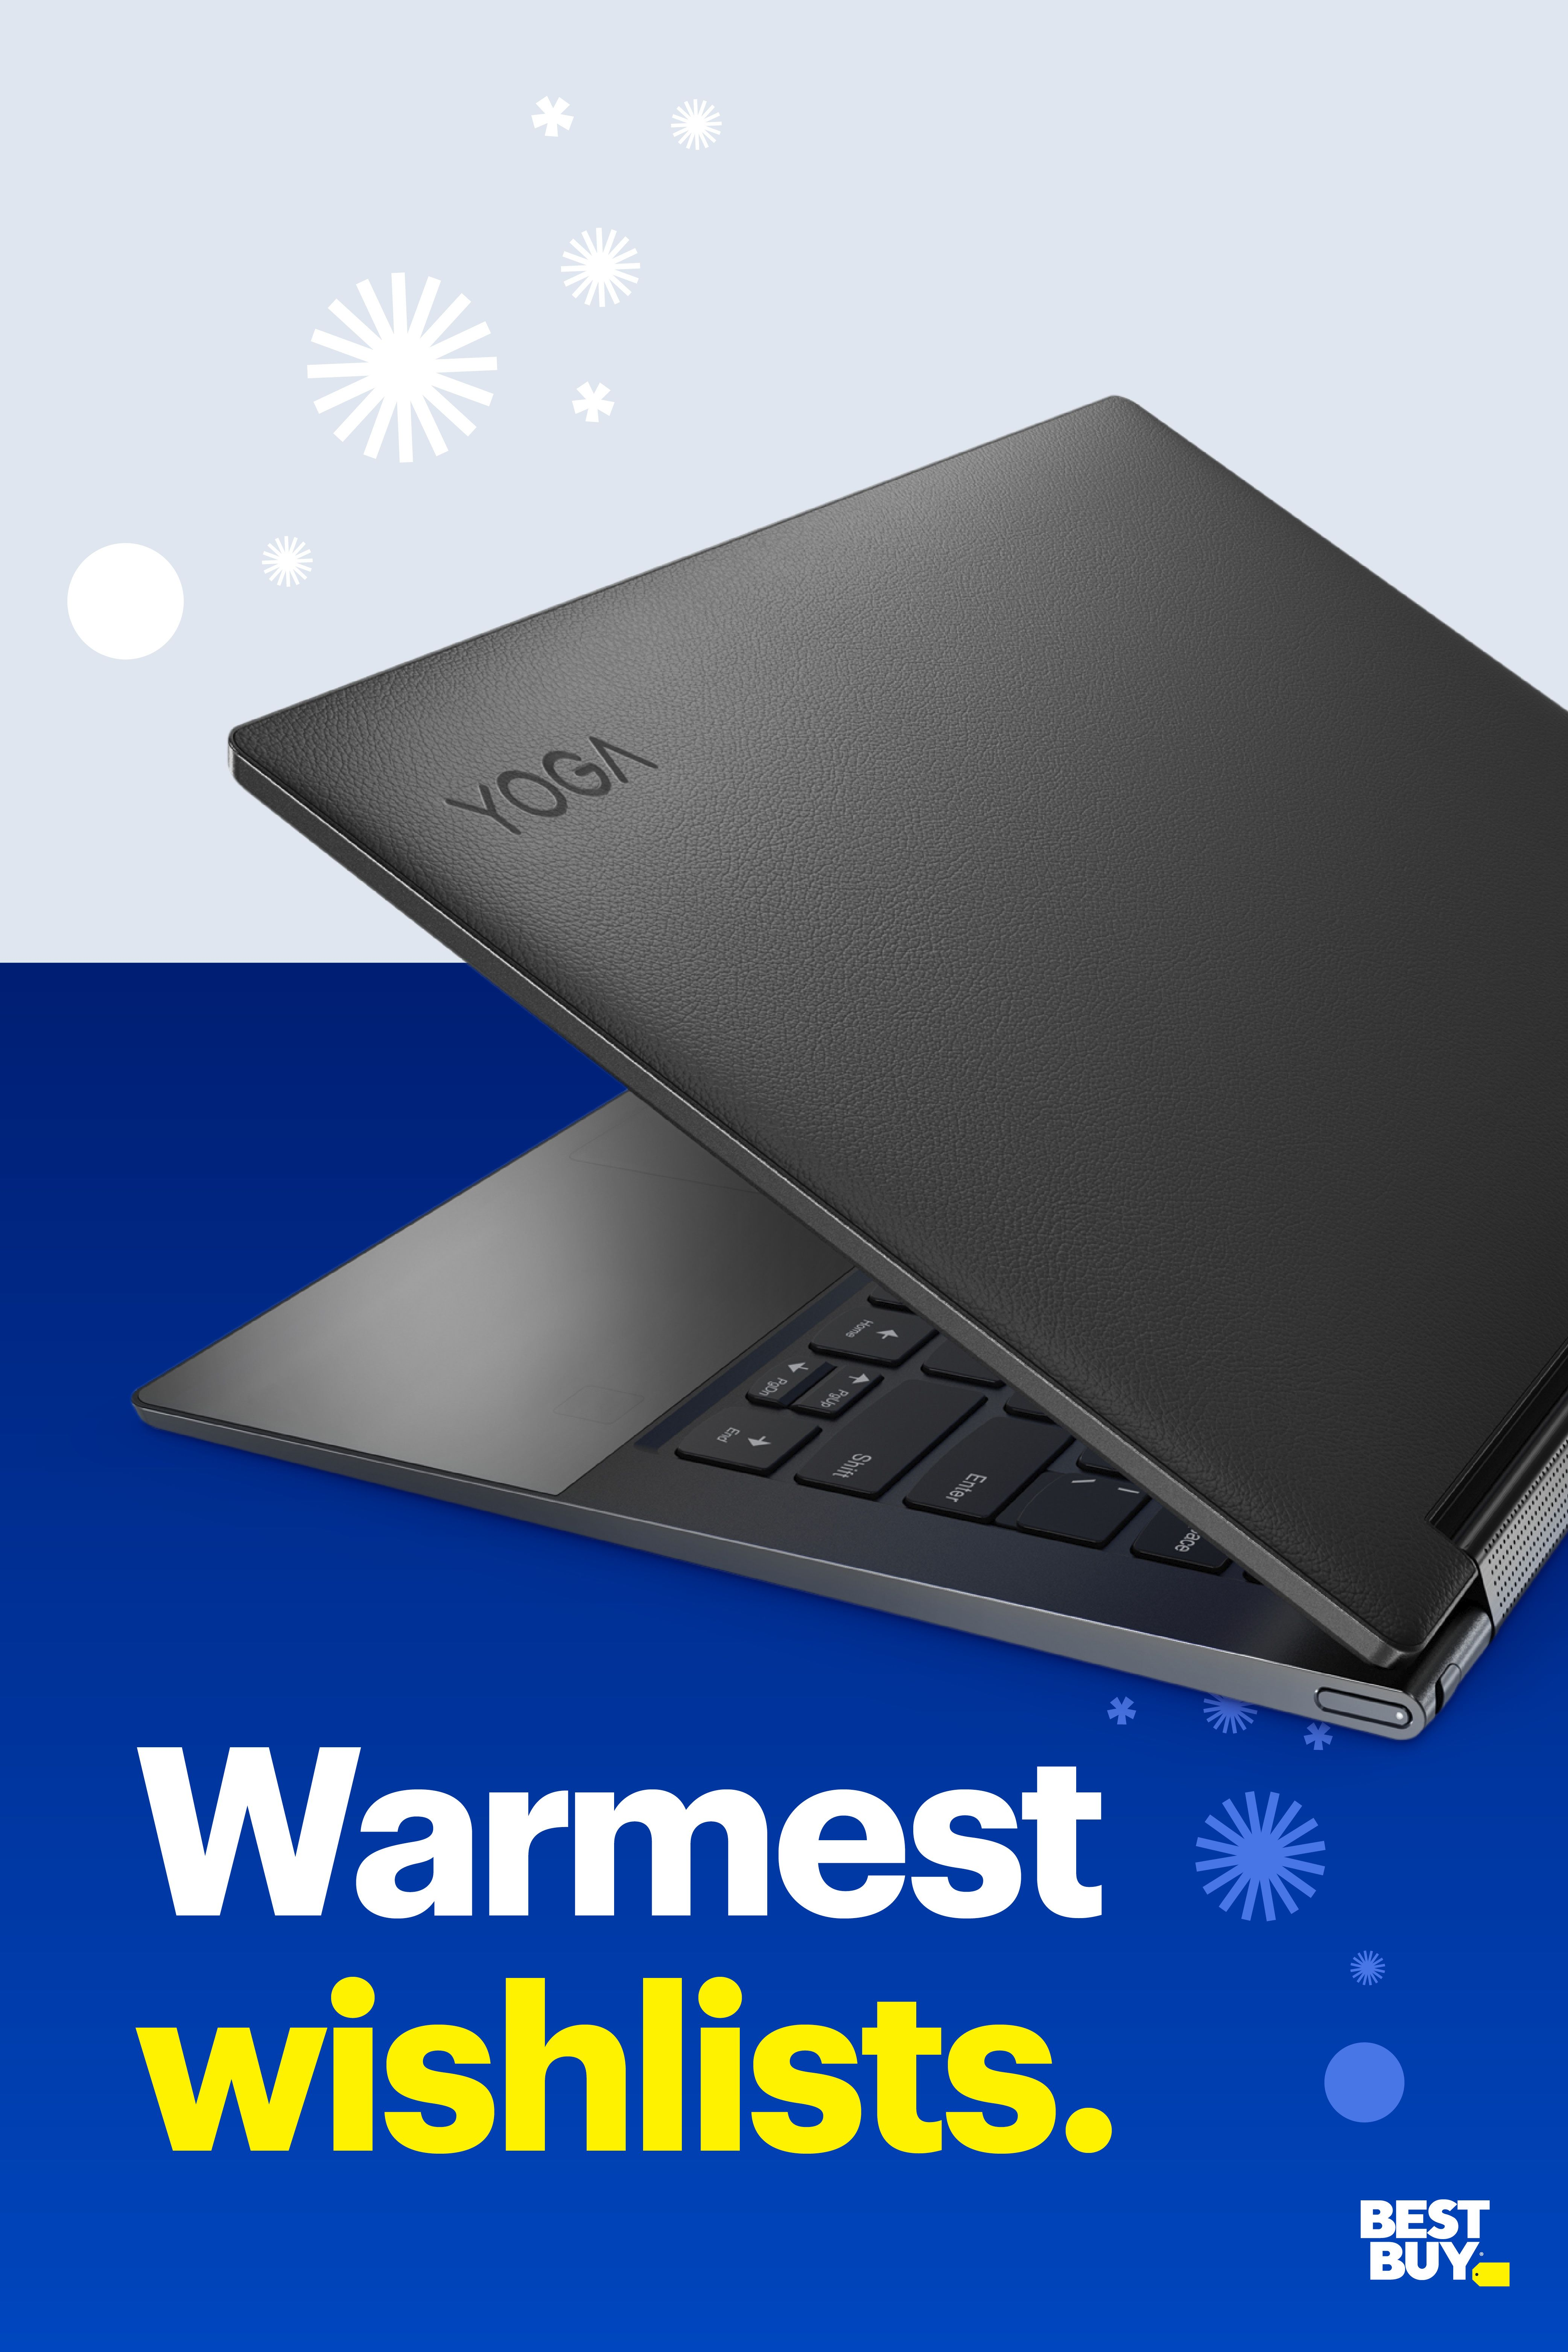 Get A Head Start On Your Holiday Shopping With Our Top Tech Gifts From Oled 4k Tvs To Ultra Thin Laptops The Mos Top Tech Gifts Cool Things To Buy Tech Gifts